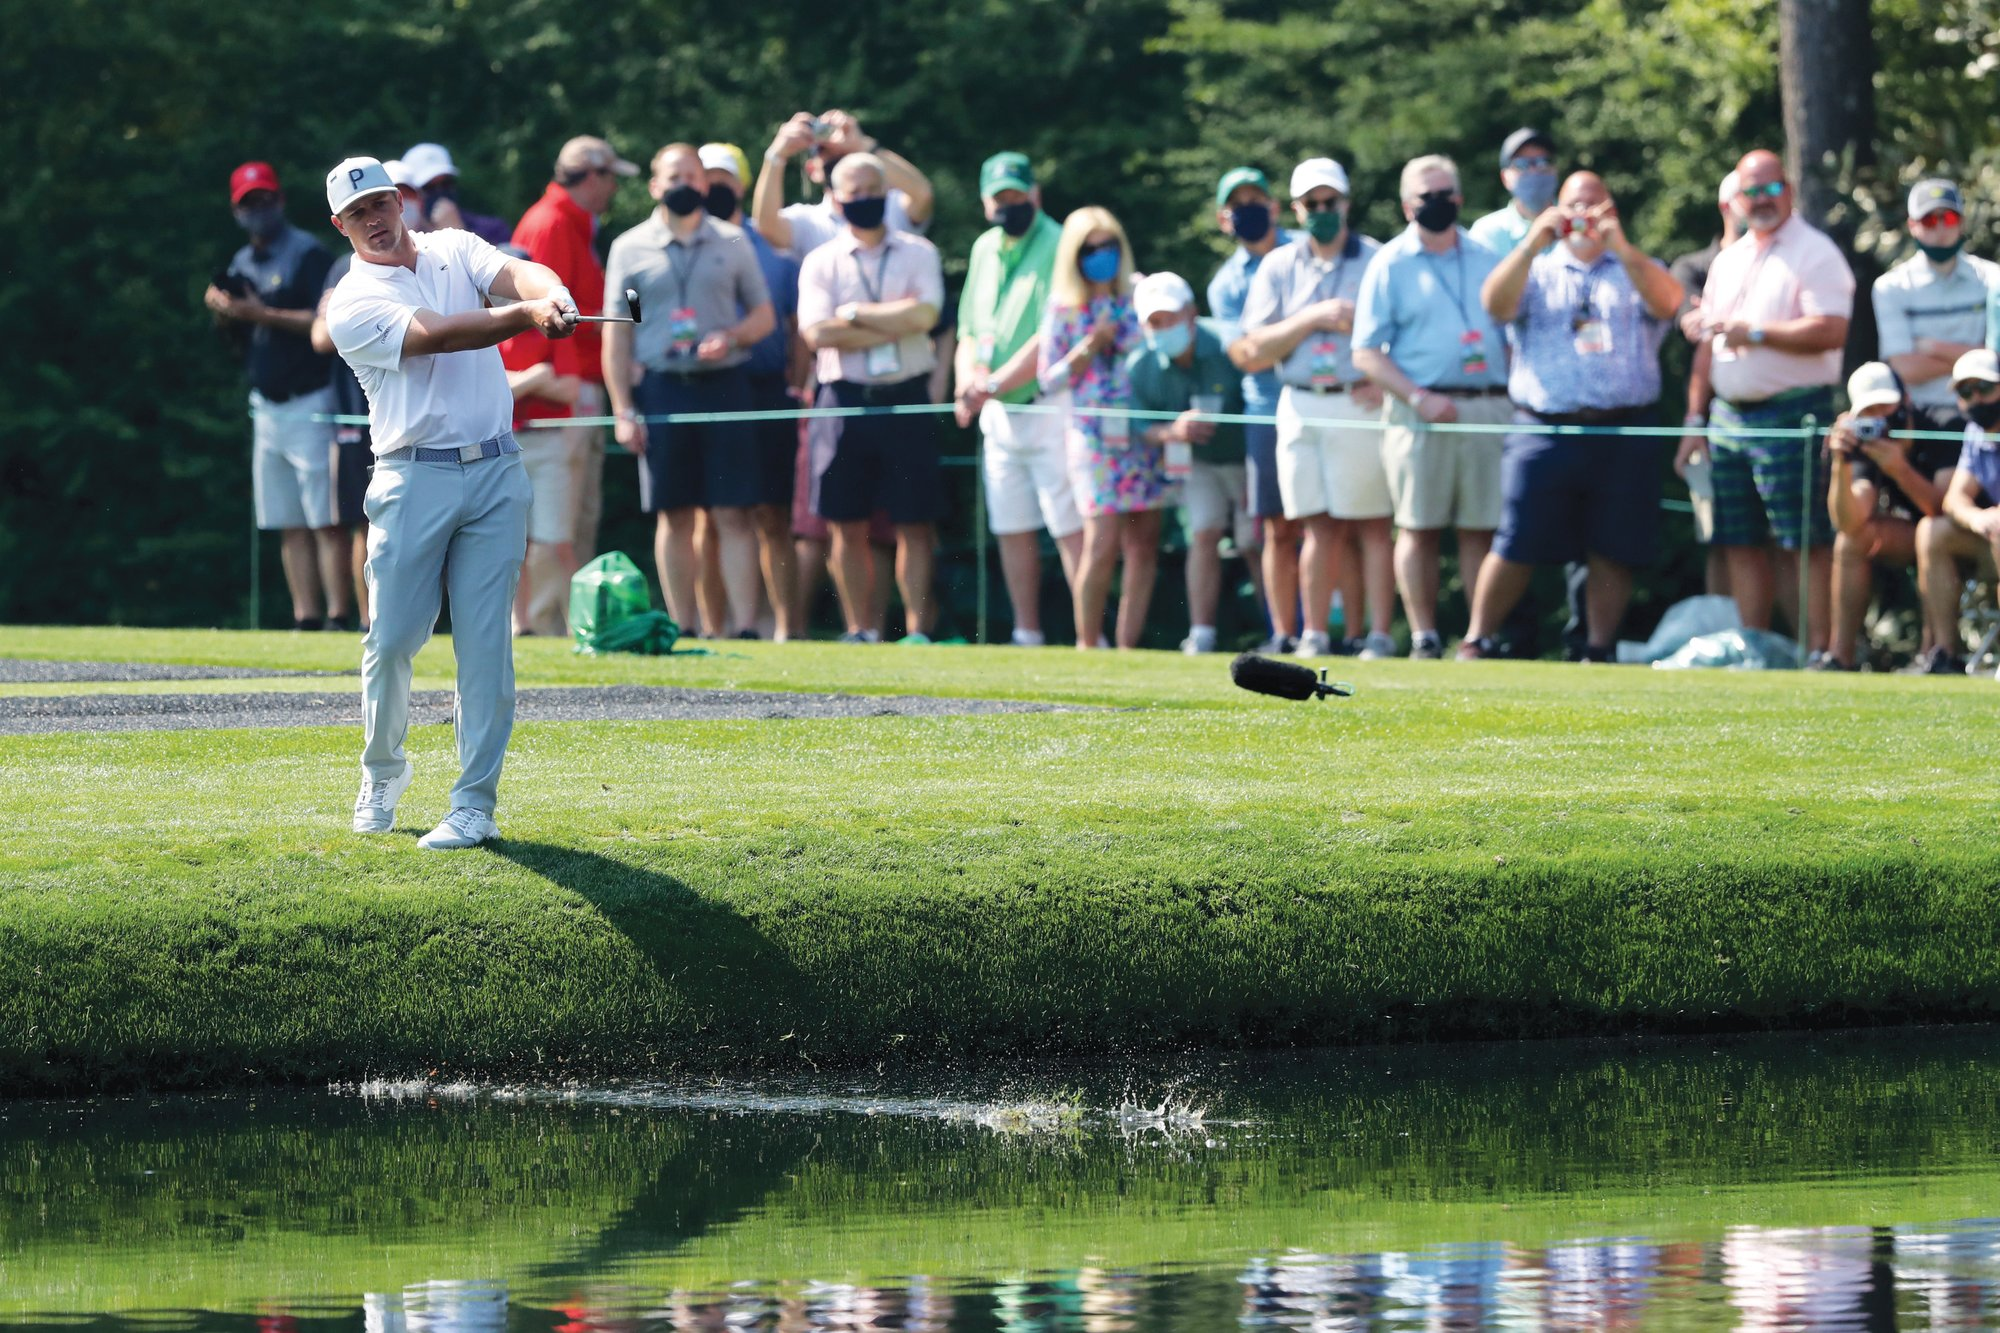 Patrons watch as Bryson DeChambeau skips his ball across the pond to the 16th green during a practice round for the Masters at Augusta National Golf Club on Wednesday.